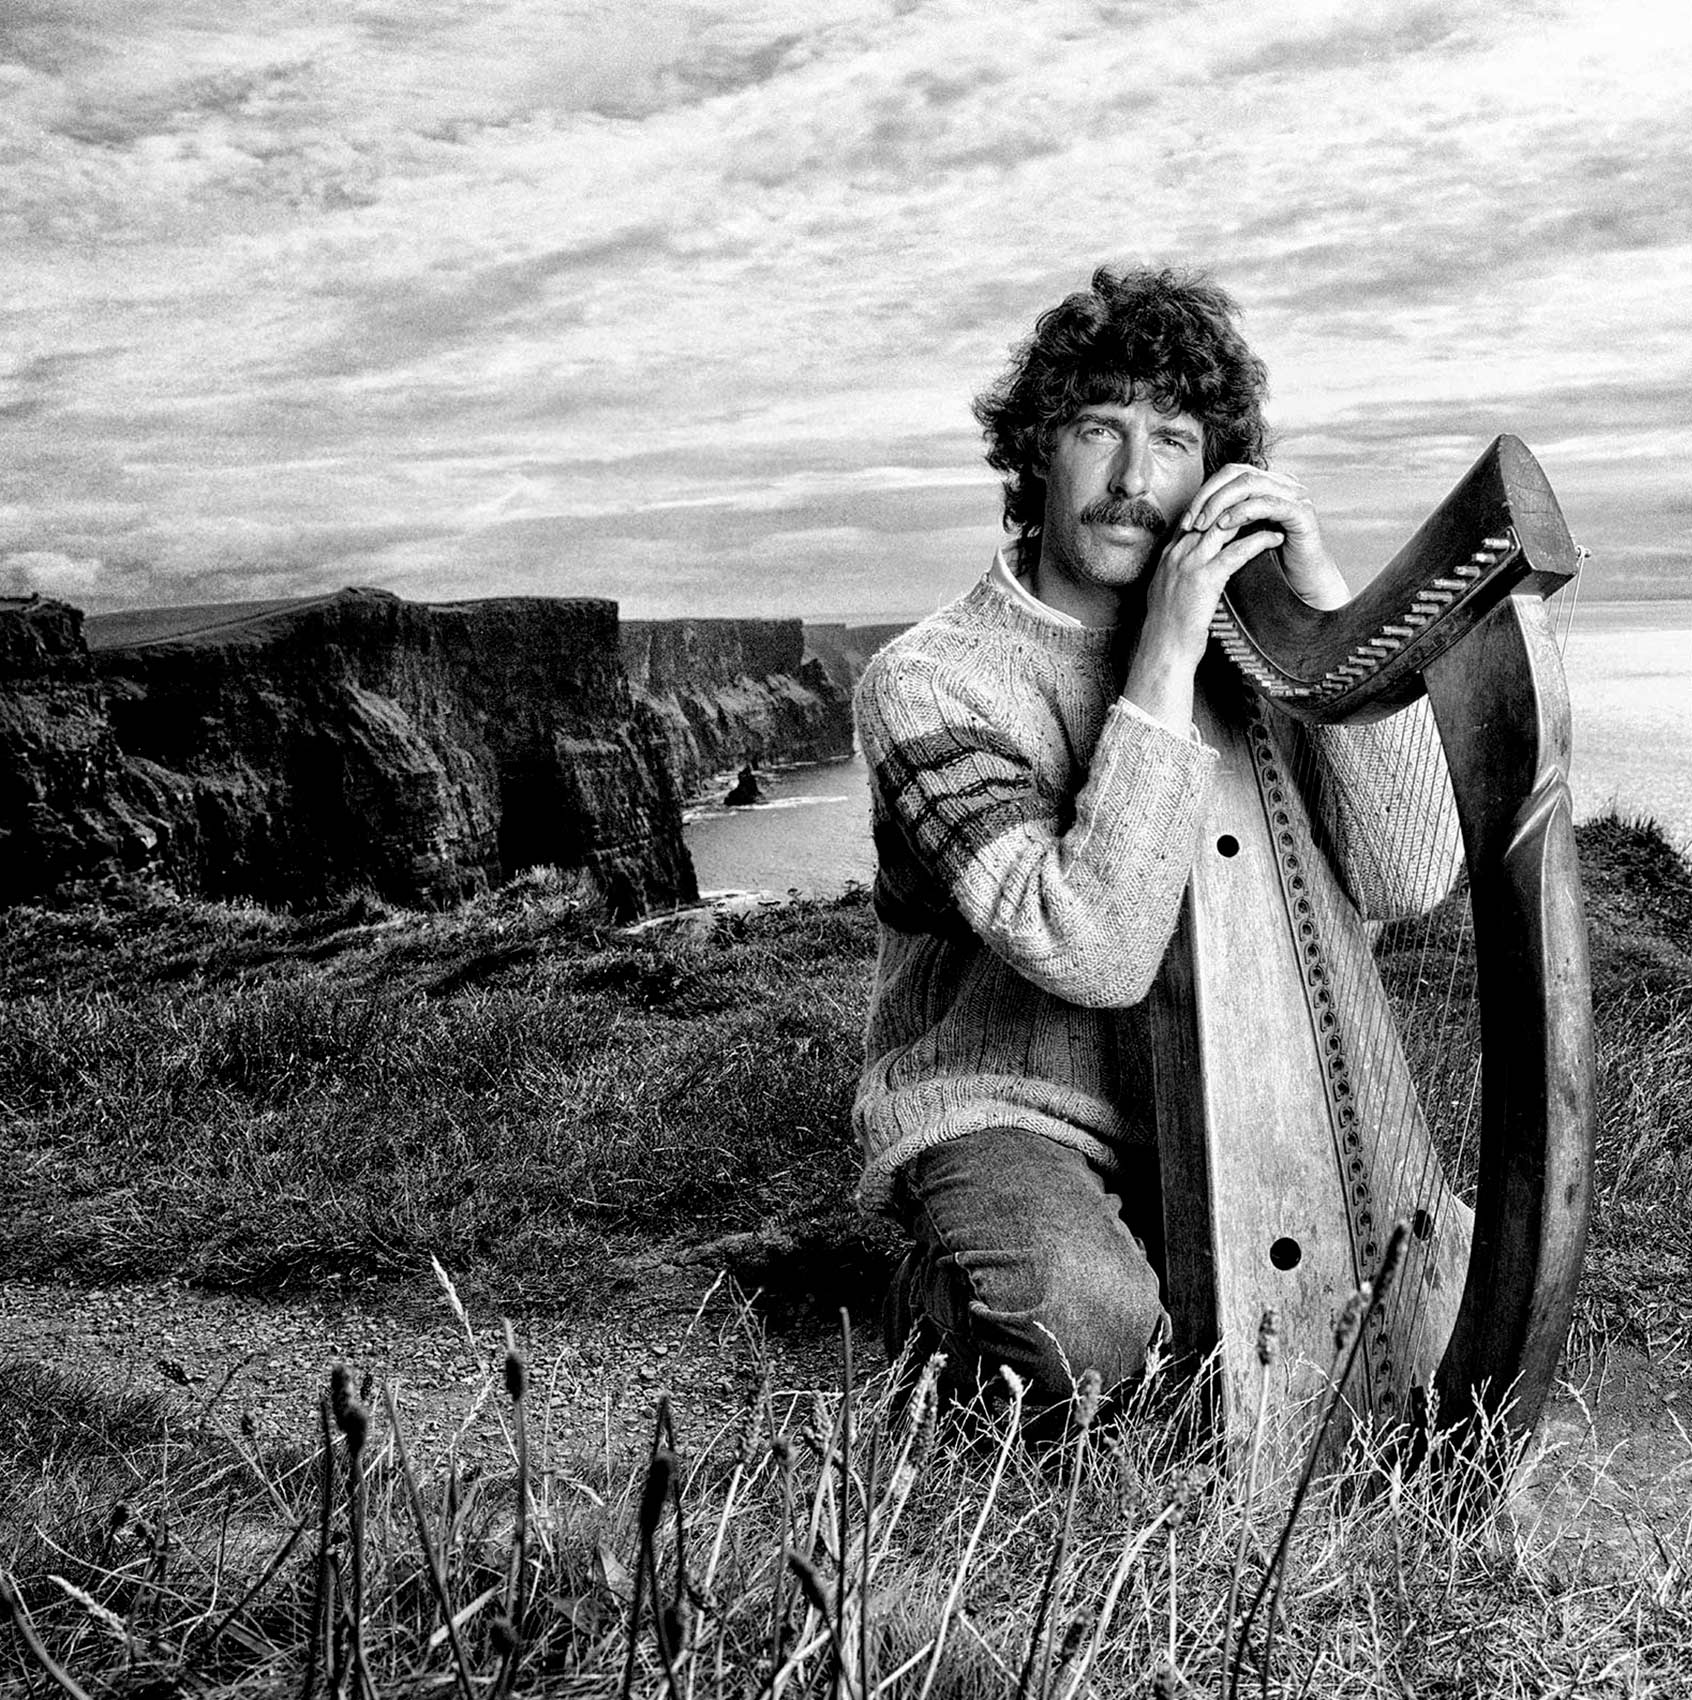 an-irish-man-poses-with-his-harp-high-up-on-the-scenic-cliffs-of-moher